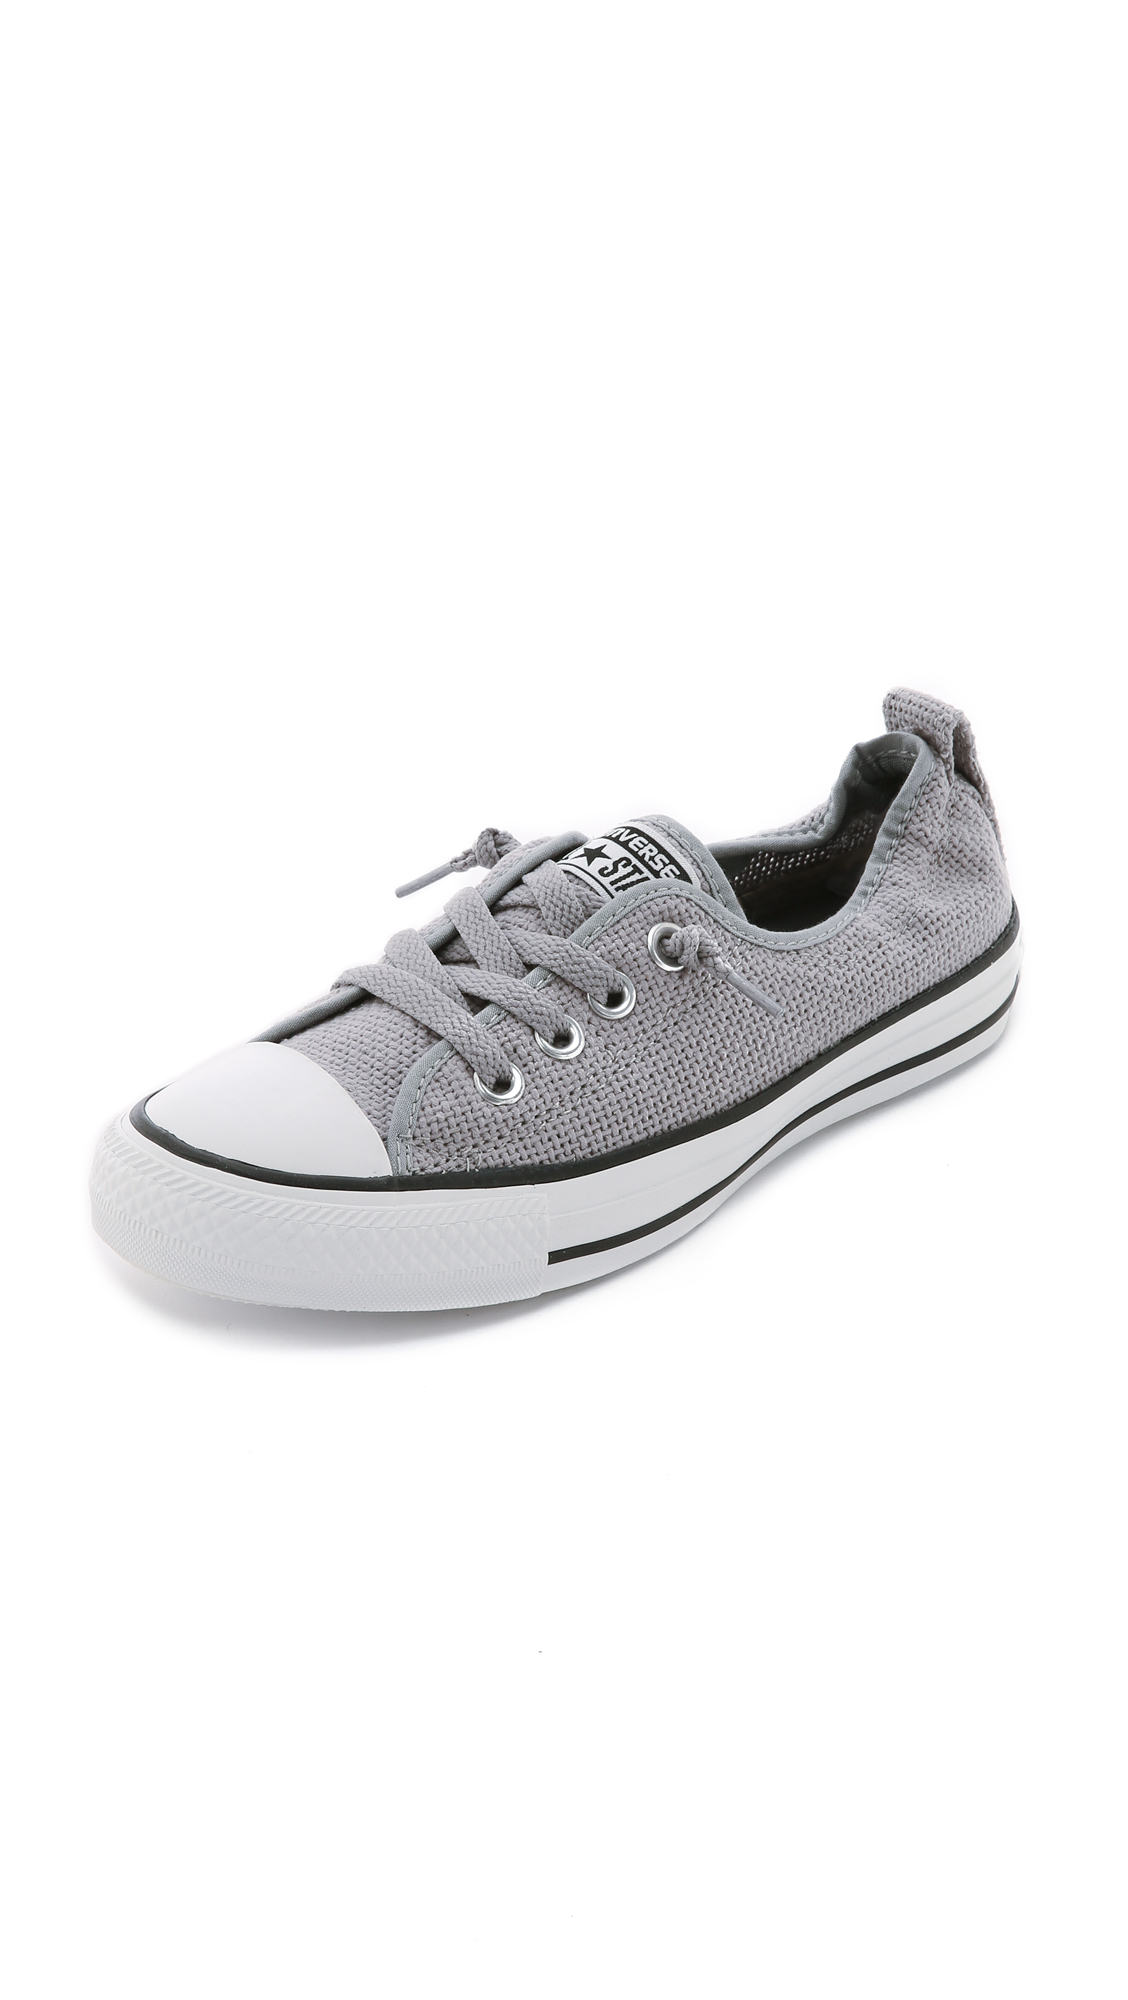 f4fcd2c2c04042 Lyst - Converse Chuck Taylor All Star Shoreline Sneakers - Dolphin ...